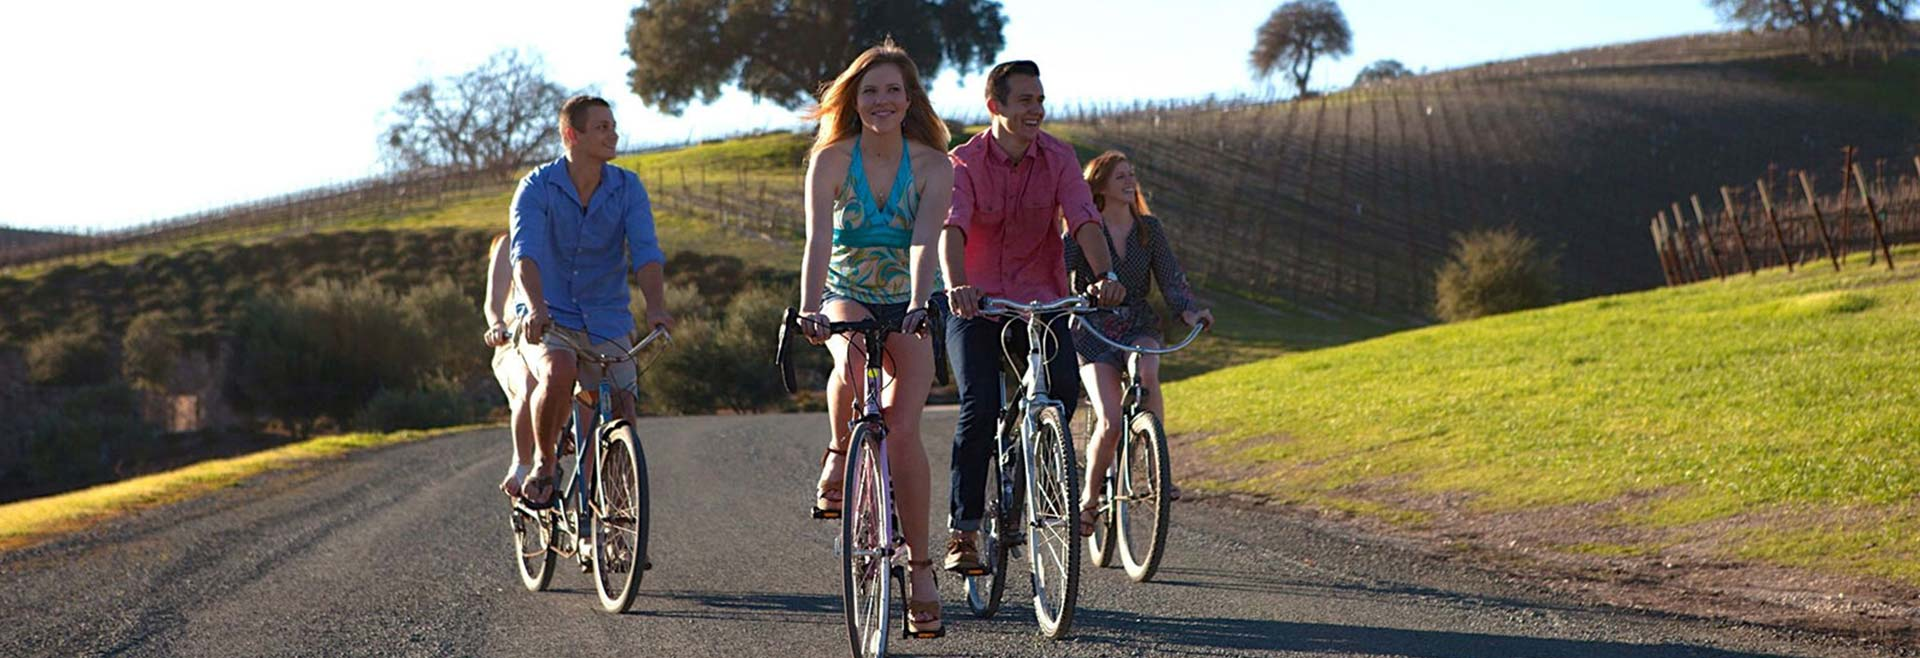 Paso Bike Tours at Paso Robles, California